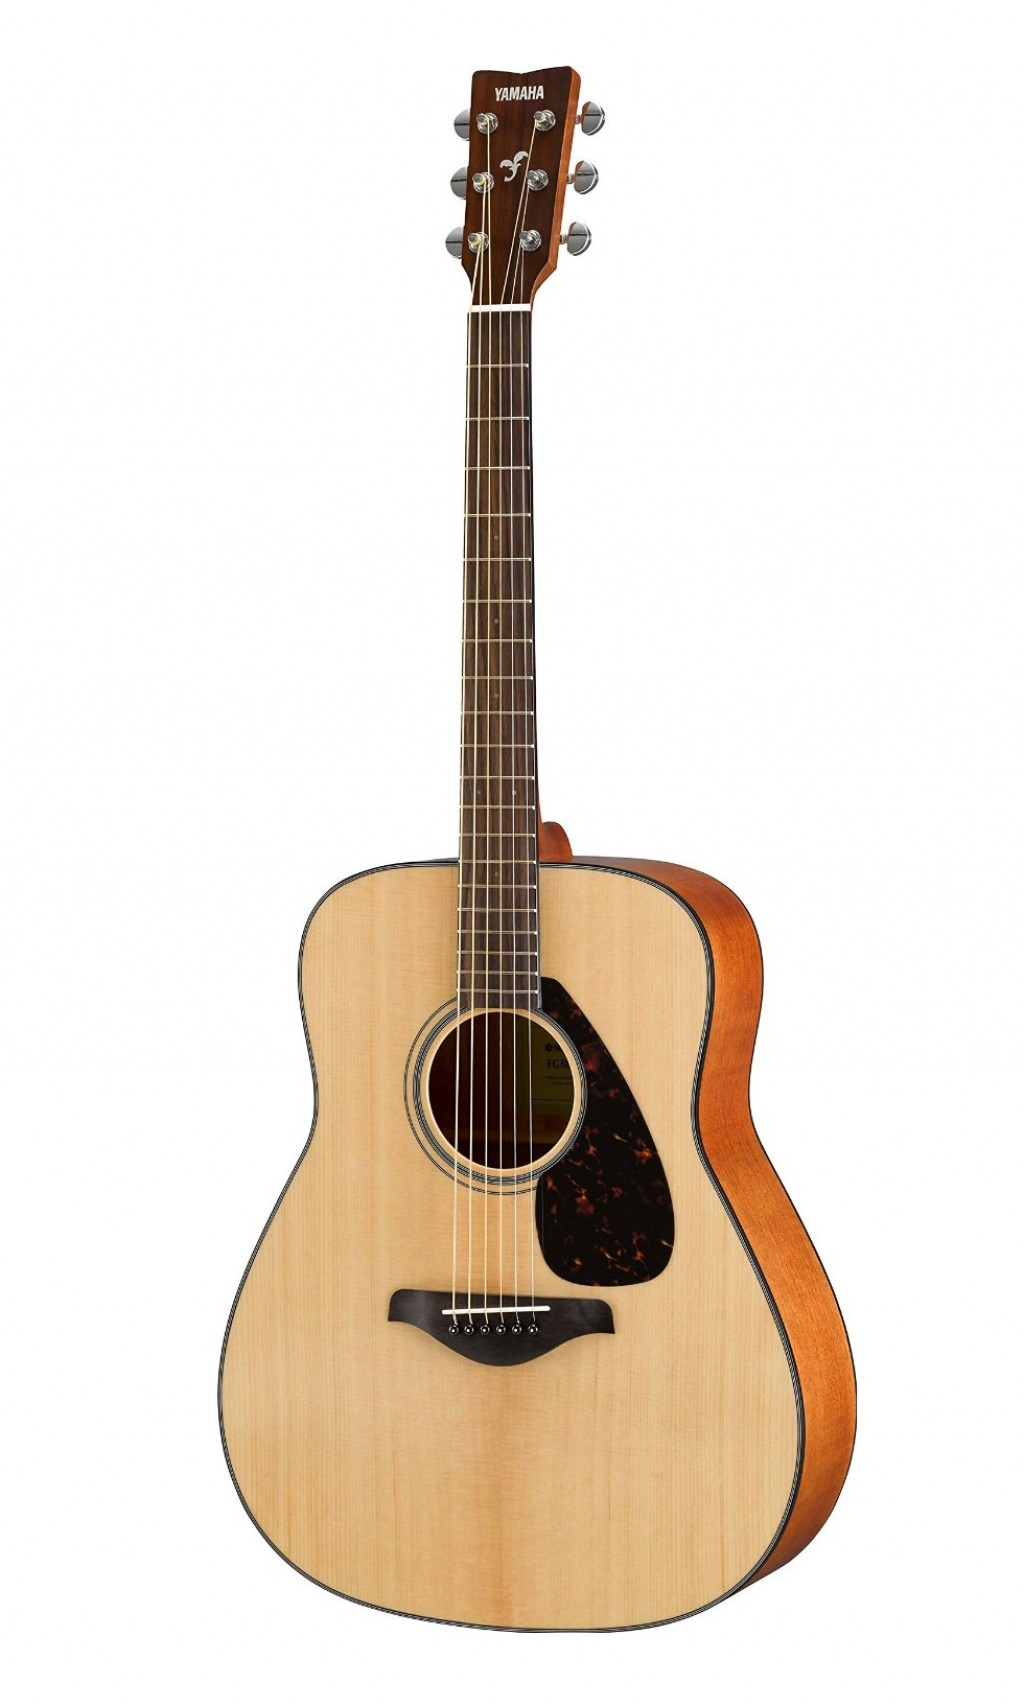 Best yamaha acoustic guitars for beginners spinditty for Yamaha acoustic bass guitar